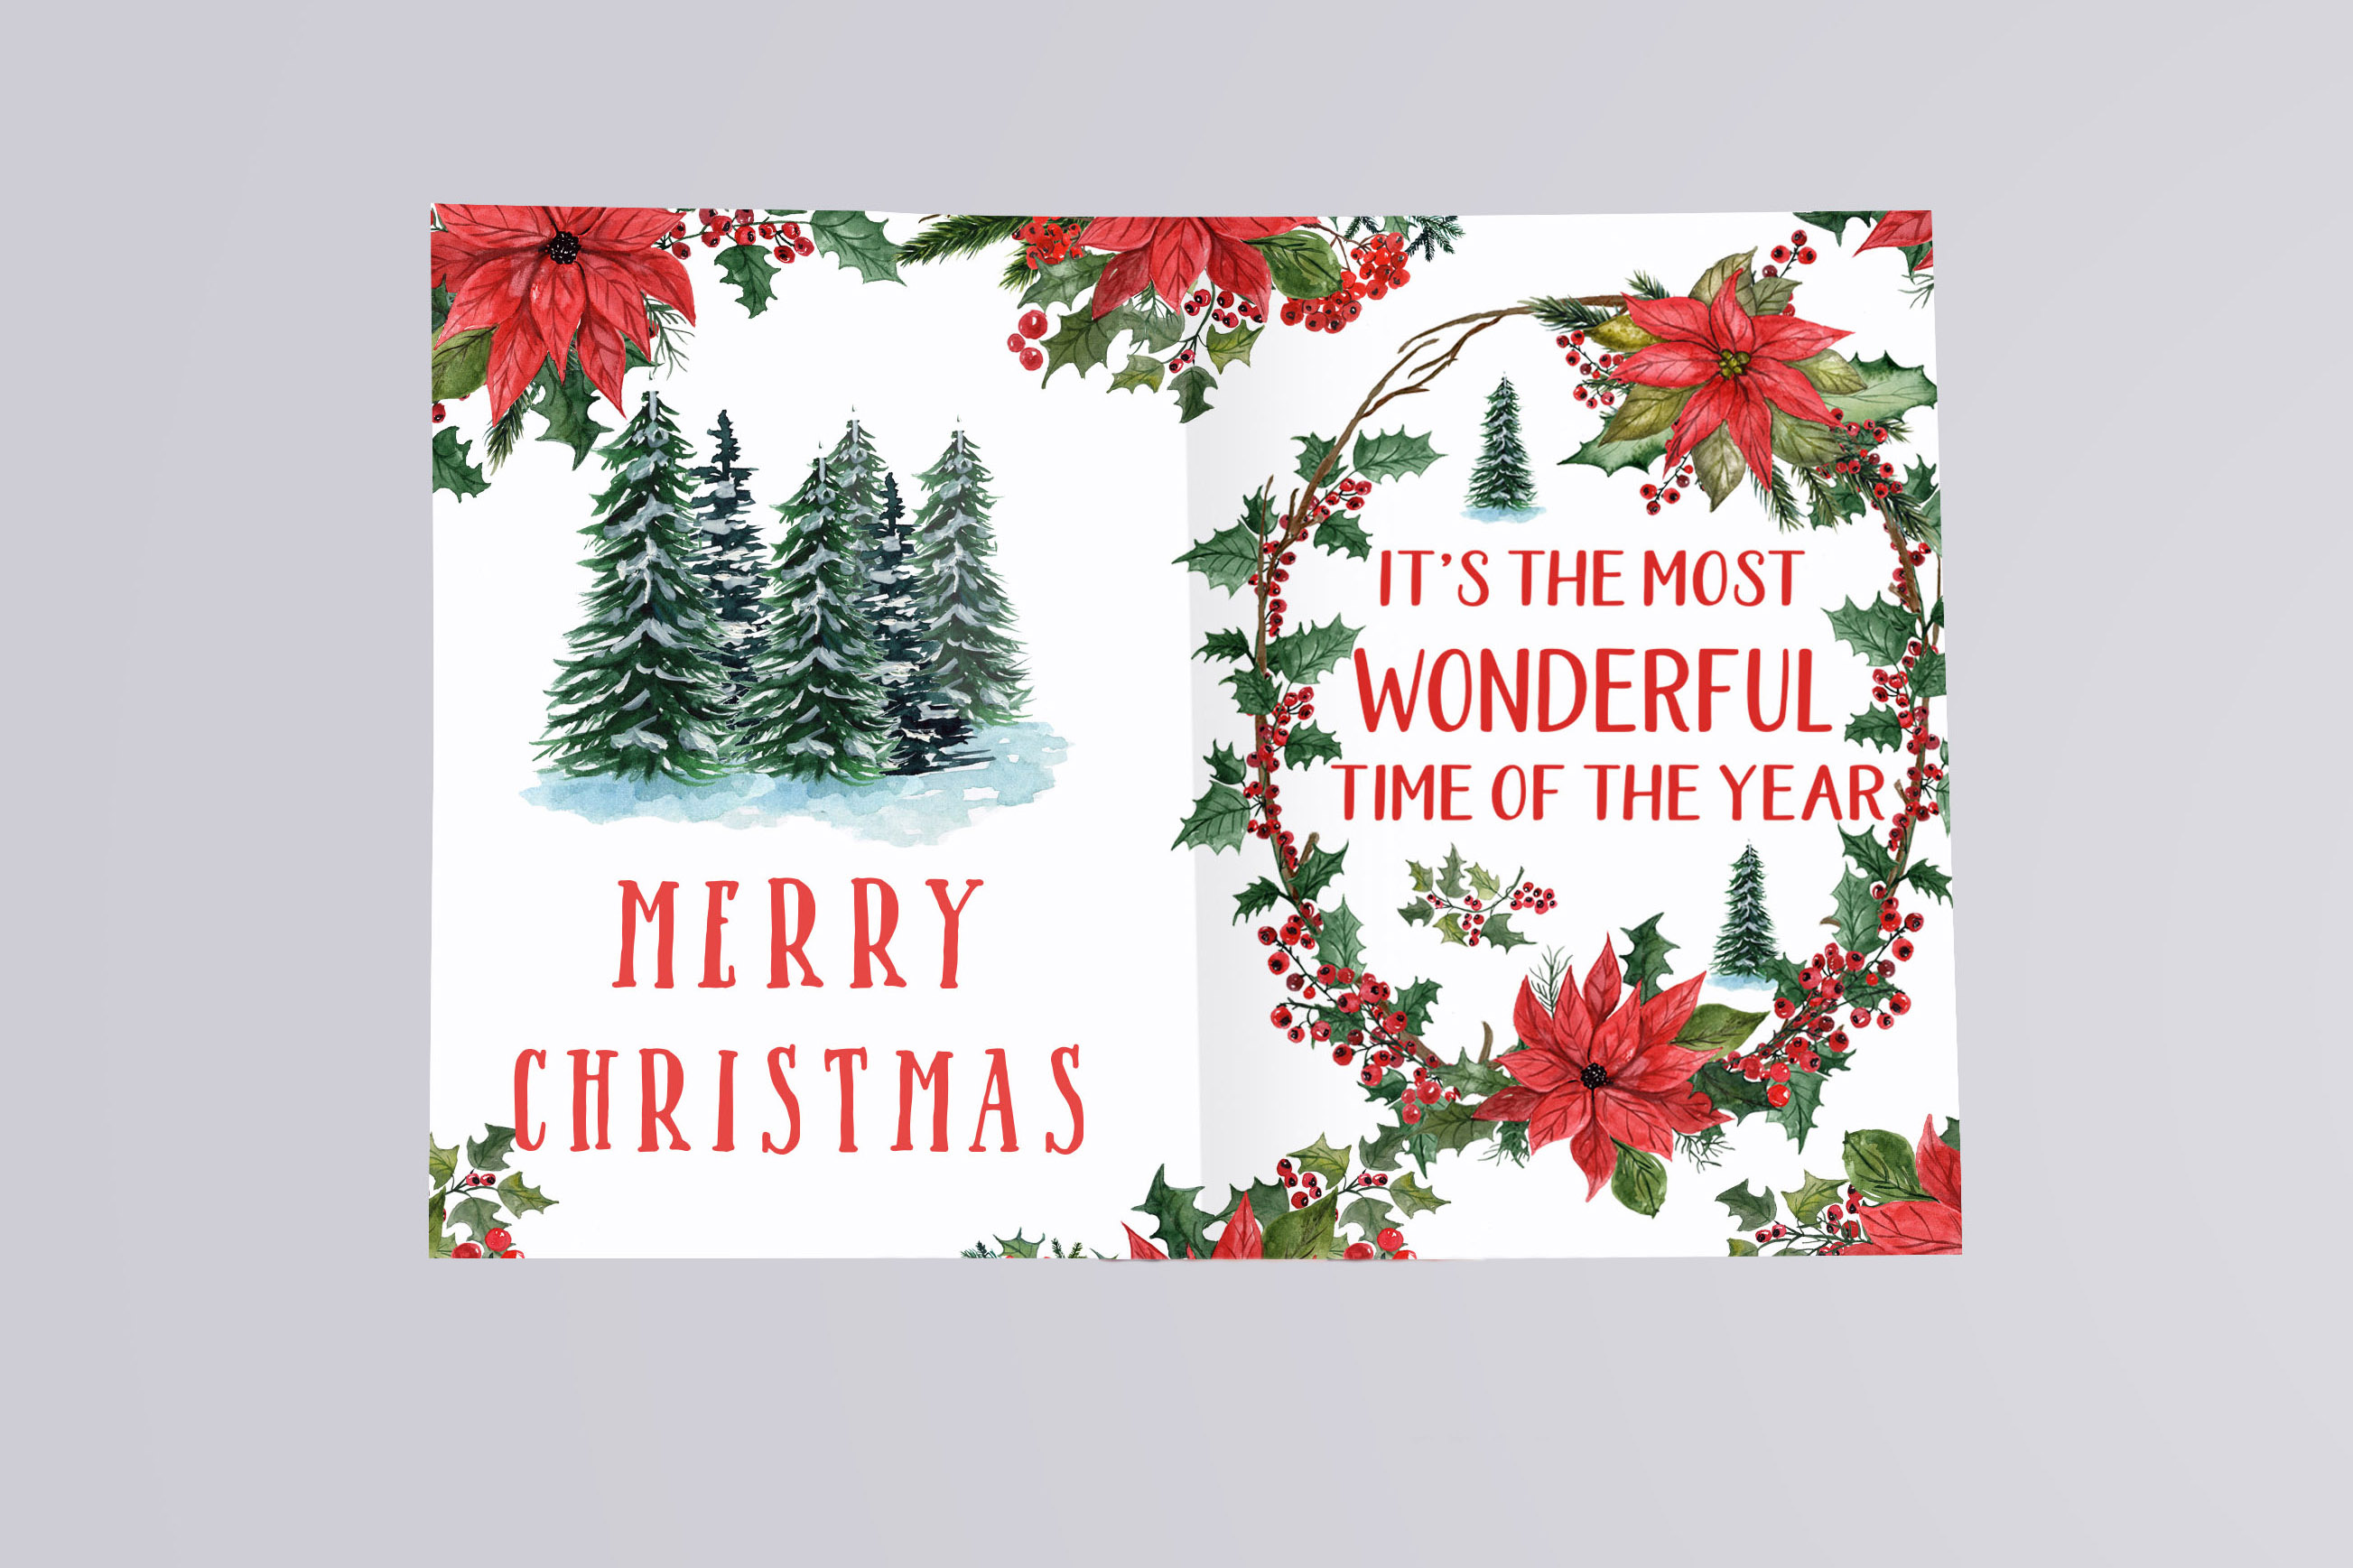 Watercolor Christmas cars clipart, Poinsettias Wreaths example image 6